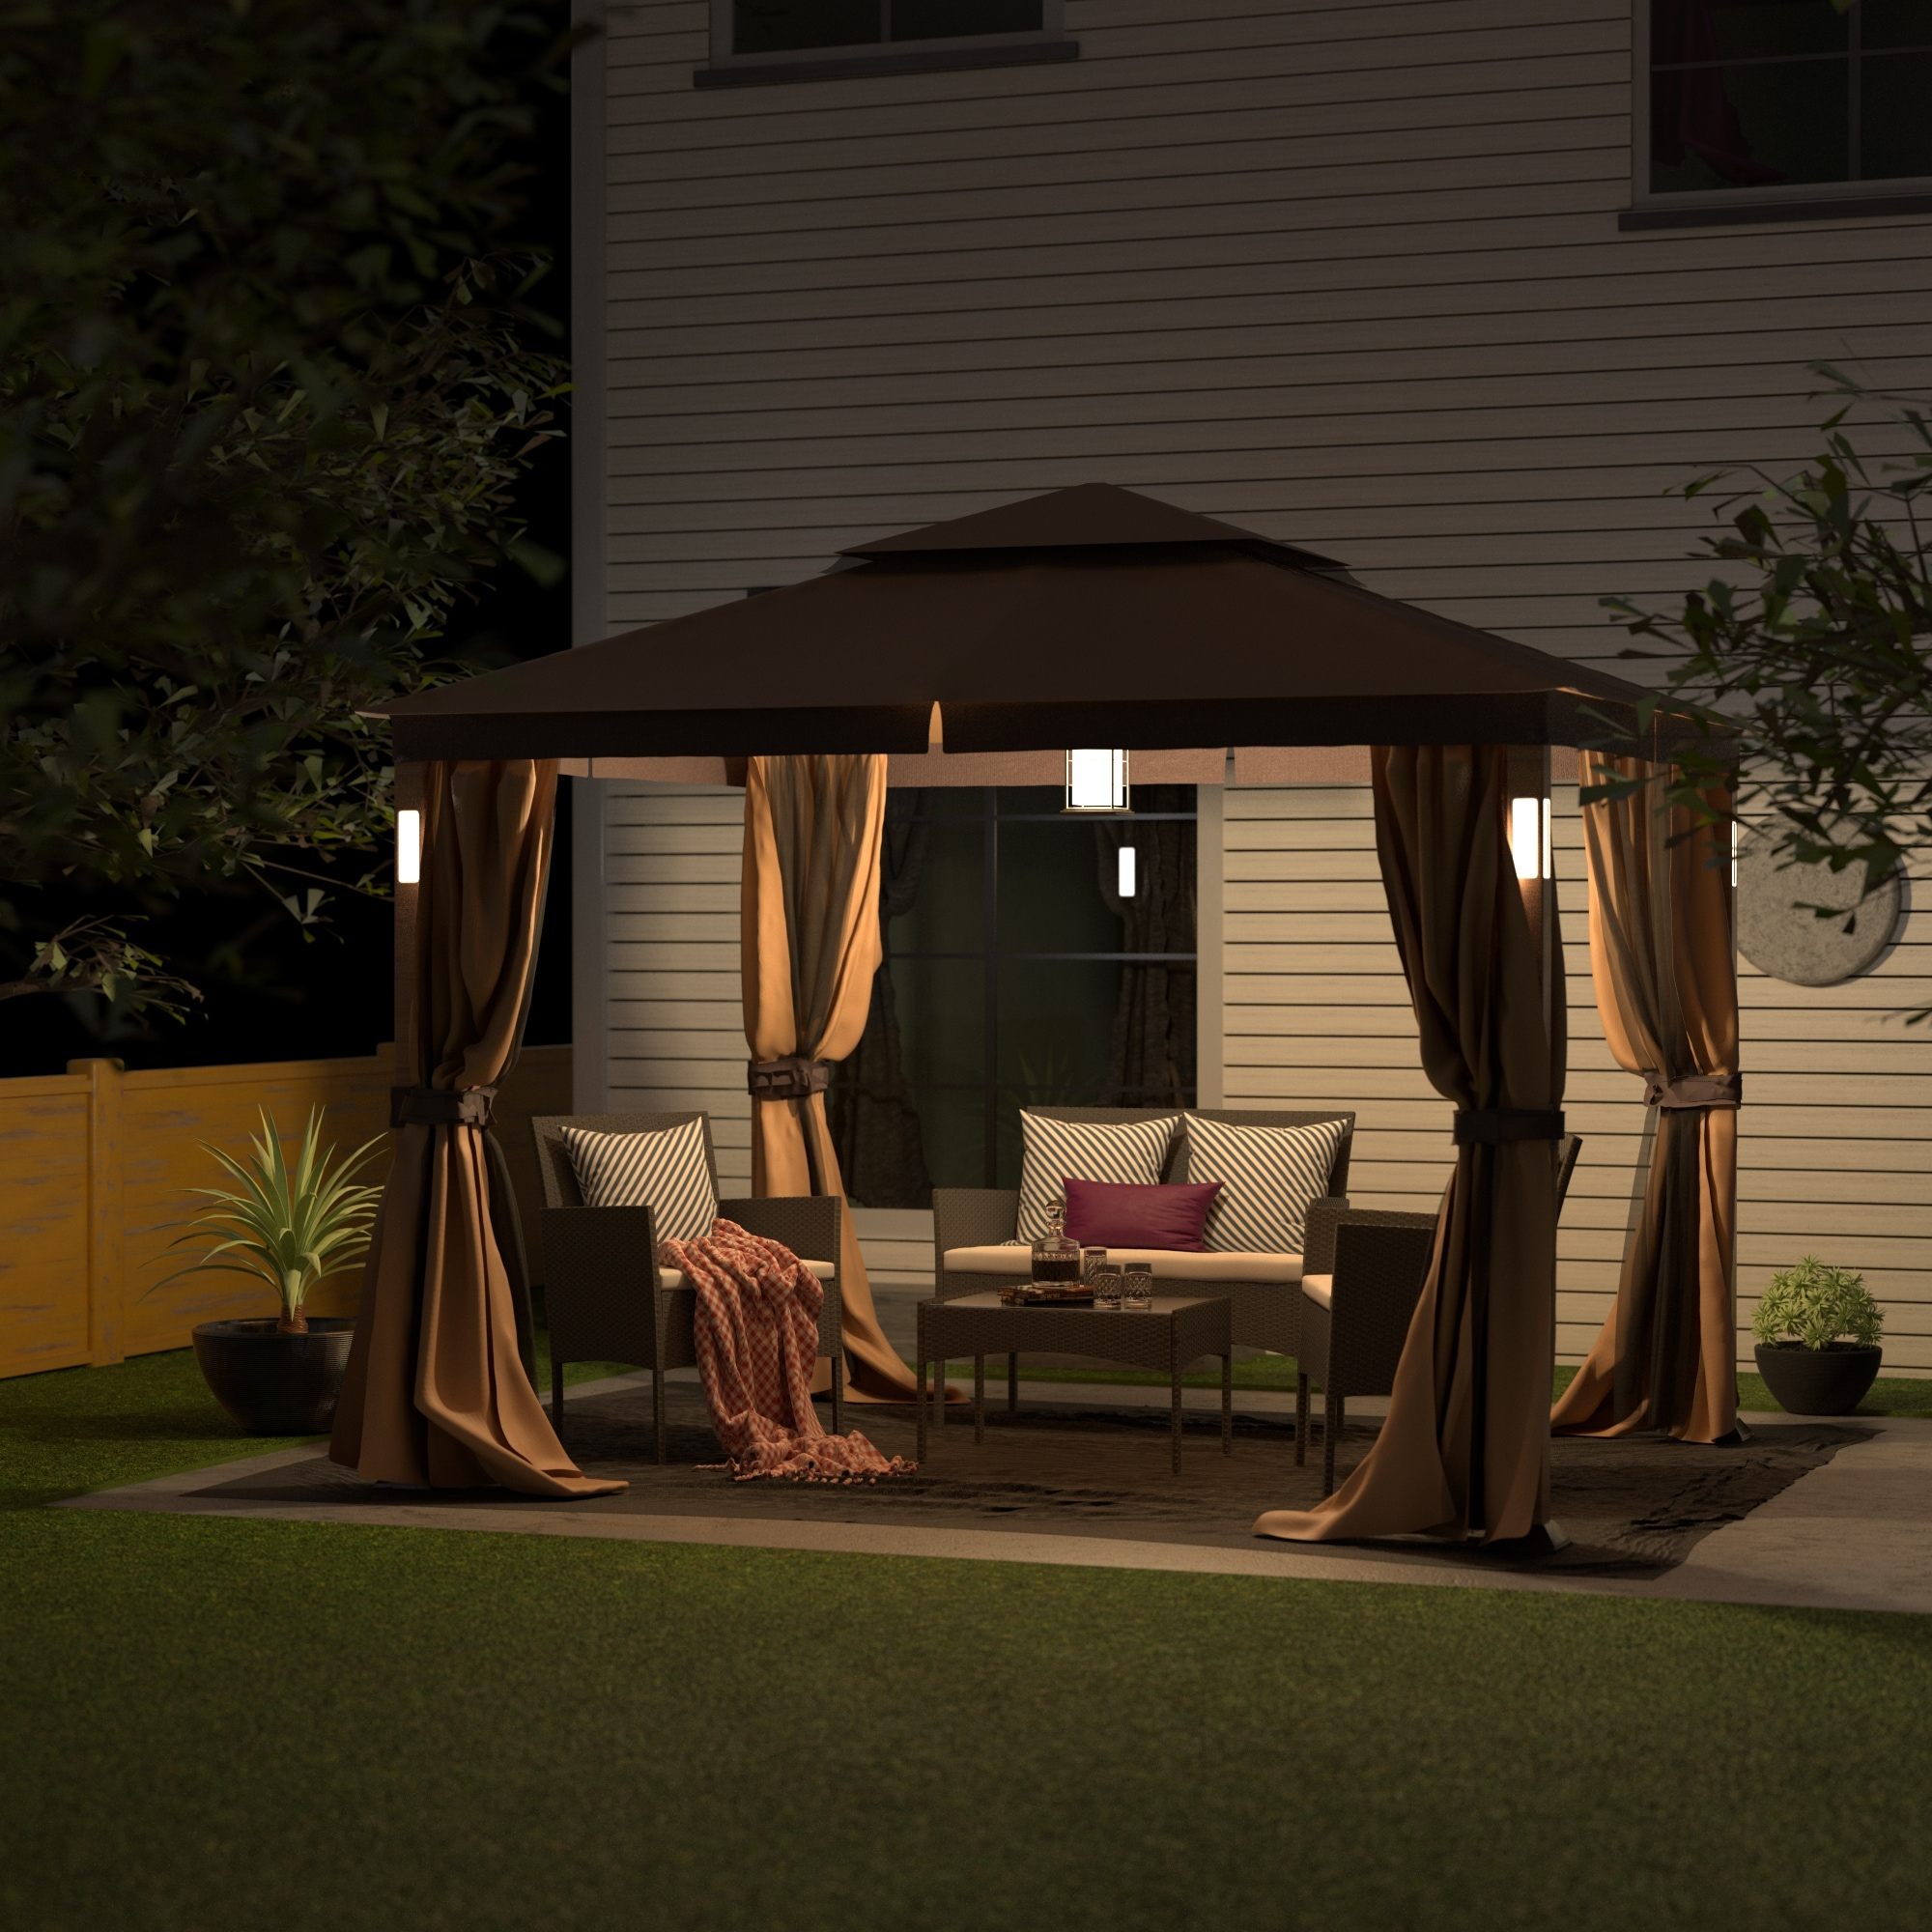 Luxuriously 10 X 12 Garden Gazebo Soft Top Outdoor Patio Gazebo Tent With Mosquito Netting Led Lights And Bluetooth Speakers On Sale Overstock 31633234